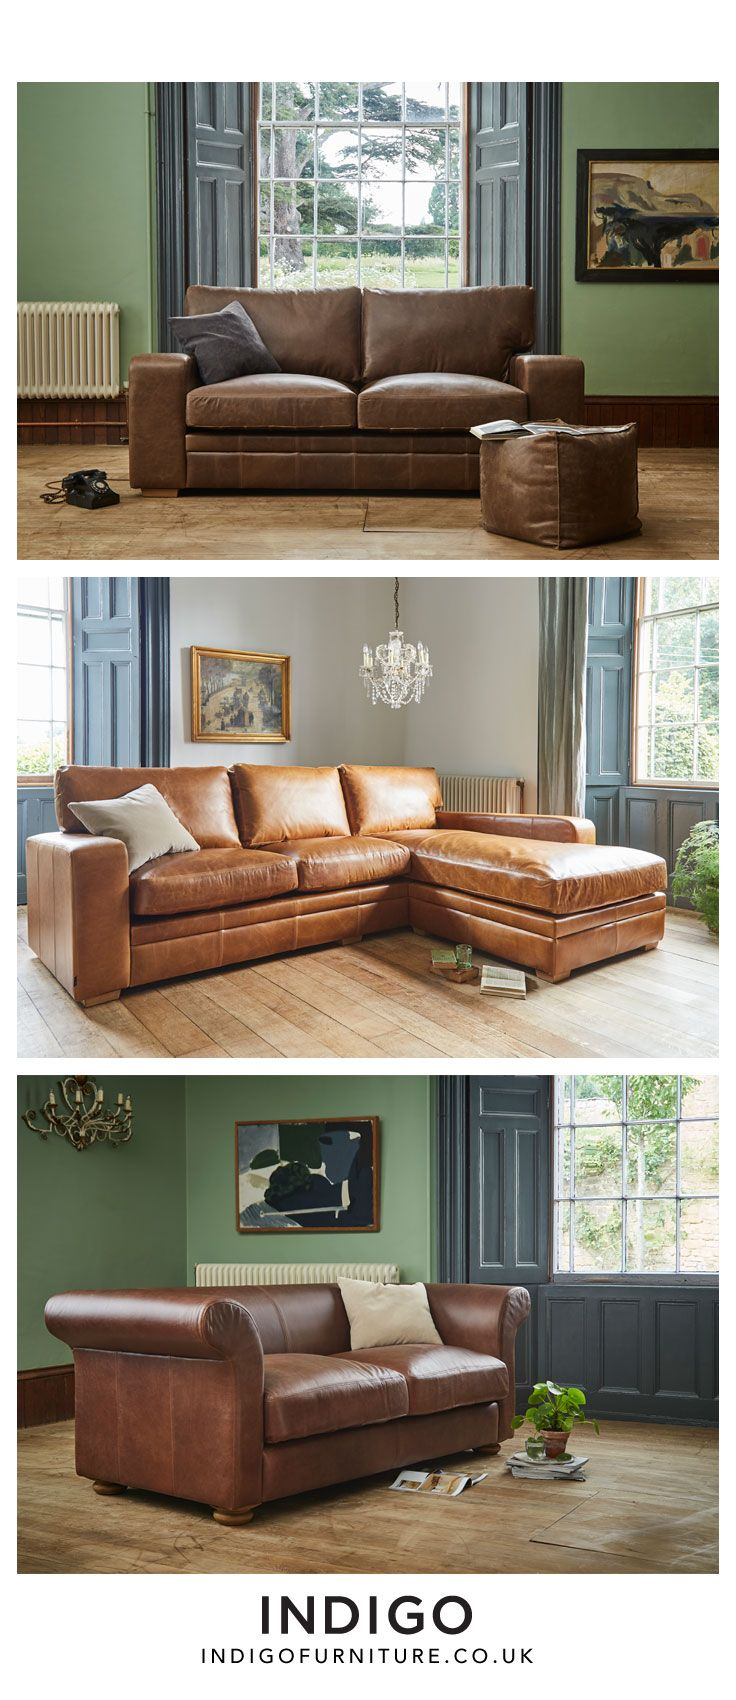 Create a relaxed, welcoming living room with this unique range of handcrafted leather sofas from Indigo. Defined by classic style lines, sumptuous fillings and hand built kiln dried hardwood frames expertly upholstered in signature Aniline leathers and tactile fabrics.